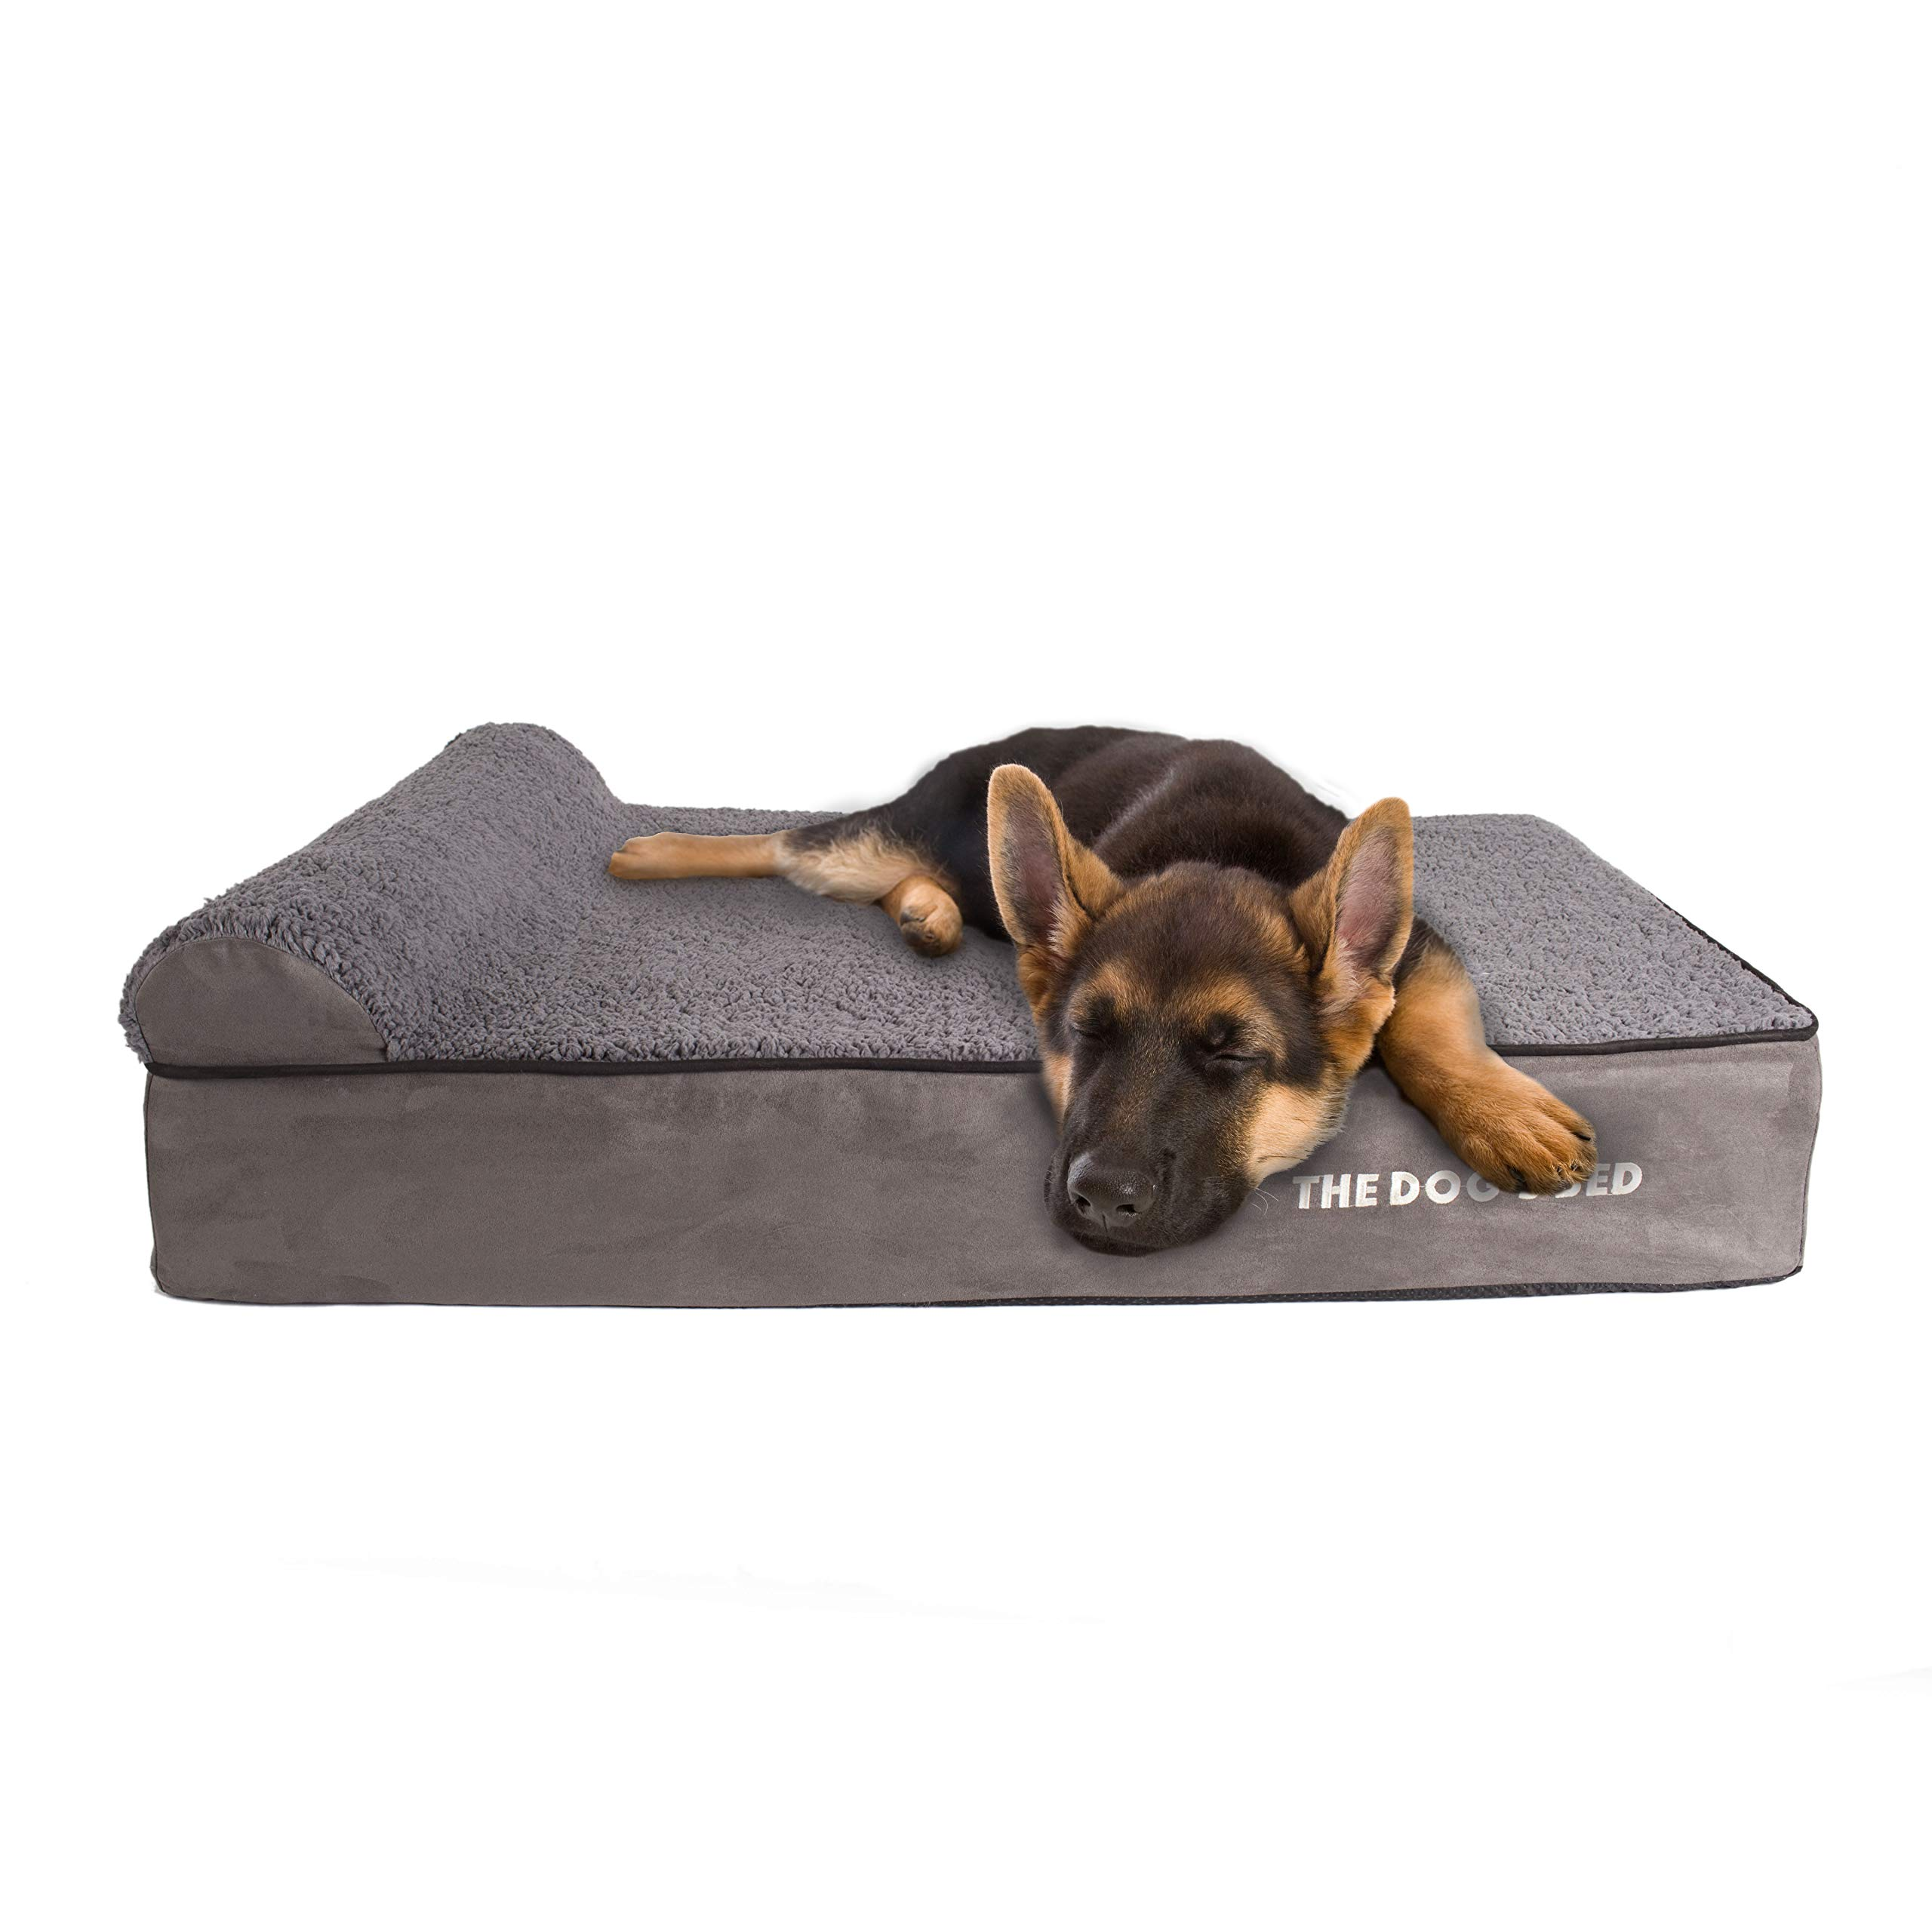 """The Dog's Bed, Premium Plush Orthopedic Waterproof Memory Foam Dog Bed, Eases Pet Arthritis, Hip Dysplasia & Post Op Pain, Quality Therapeutic, Supportive Bed, Large 40"""" x 25"""" x 6"""" (Grey Plush)"""